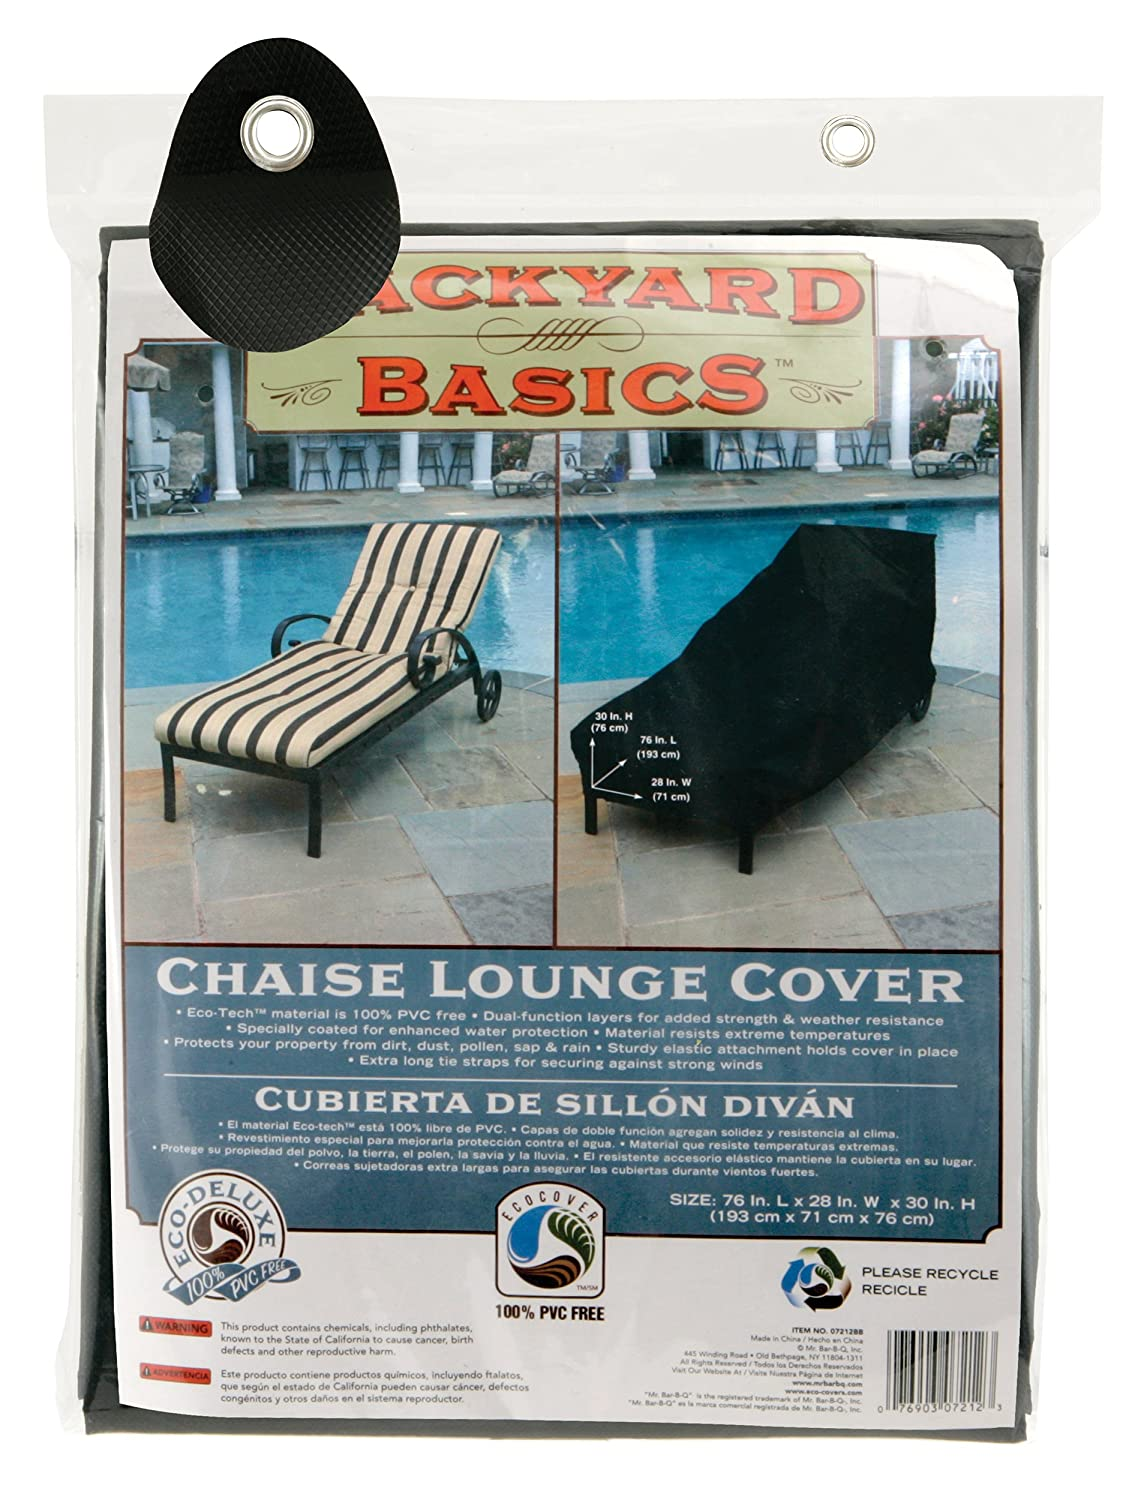 Backyard Basics 07212BB Chaise Lounge Cover - 76-Inch by 28-Inch by 30-Inch